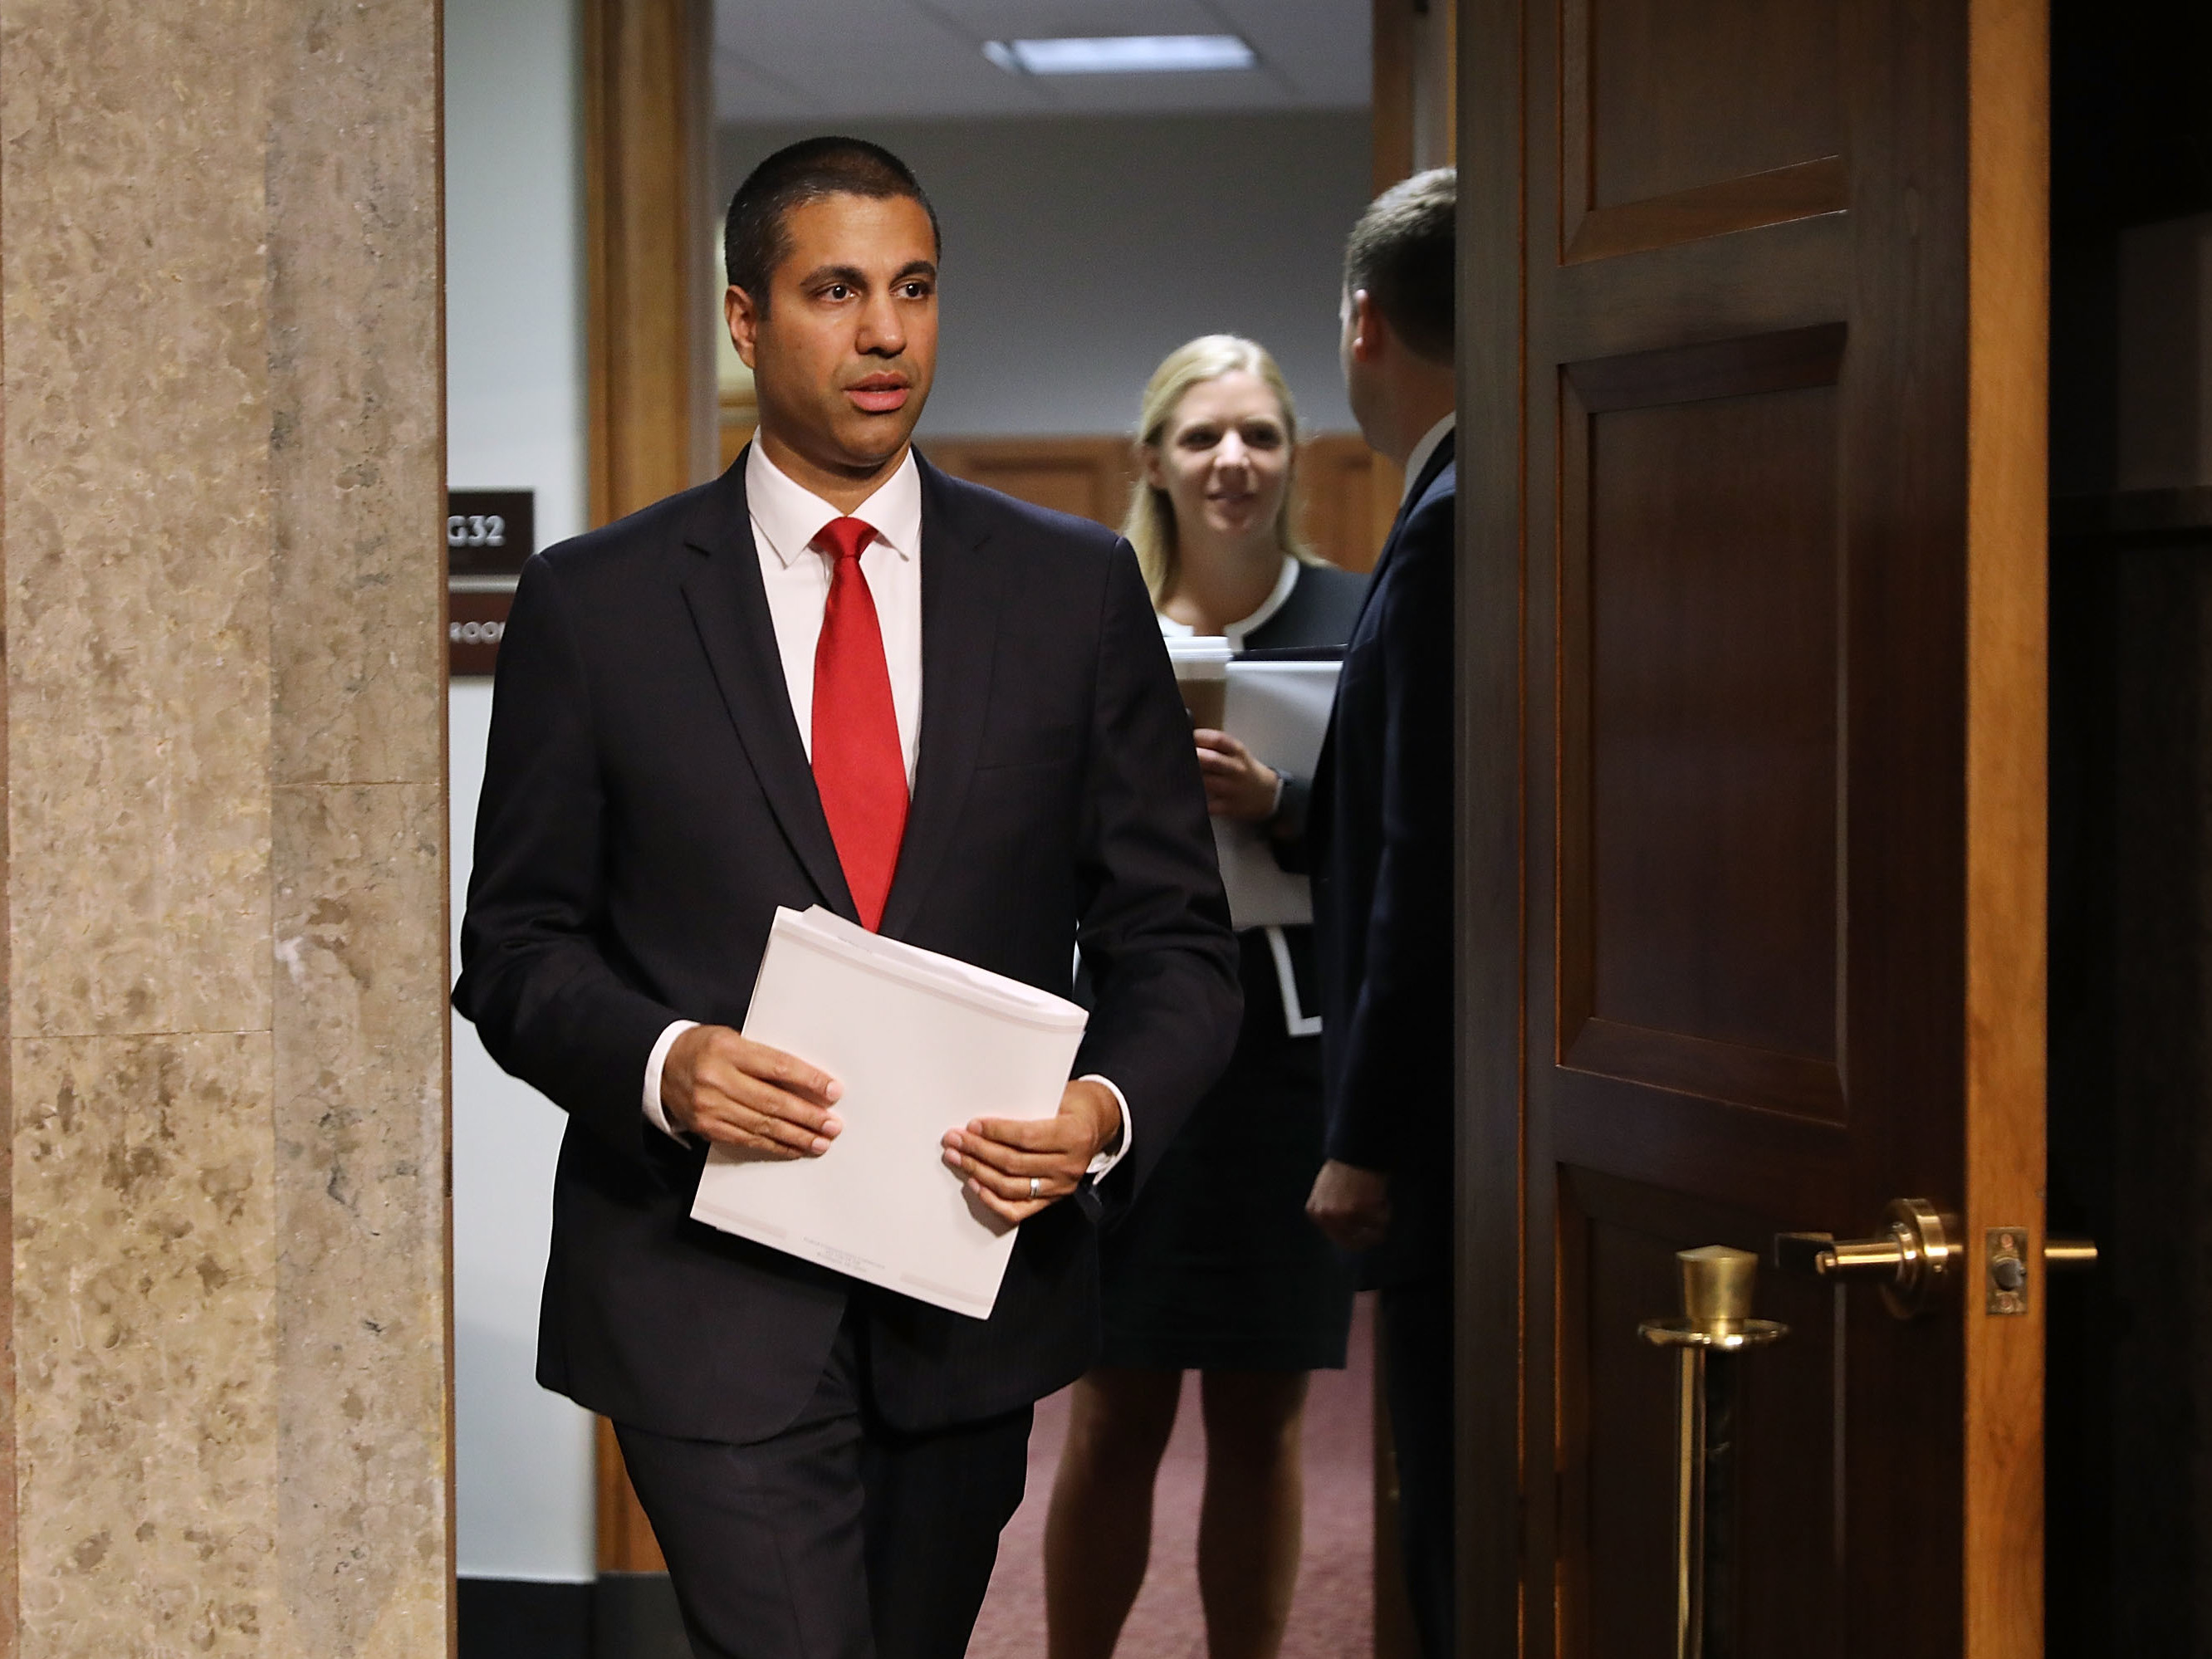 Net neutrality rules expected to be repealed on partisan lines